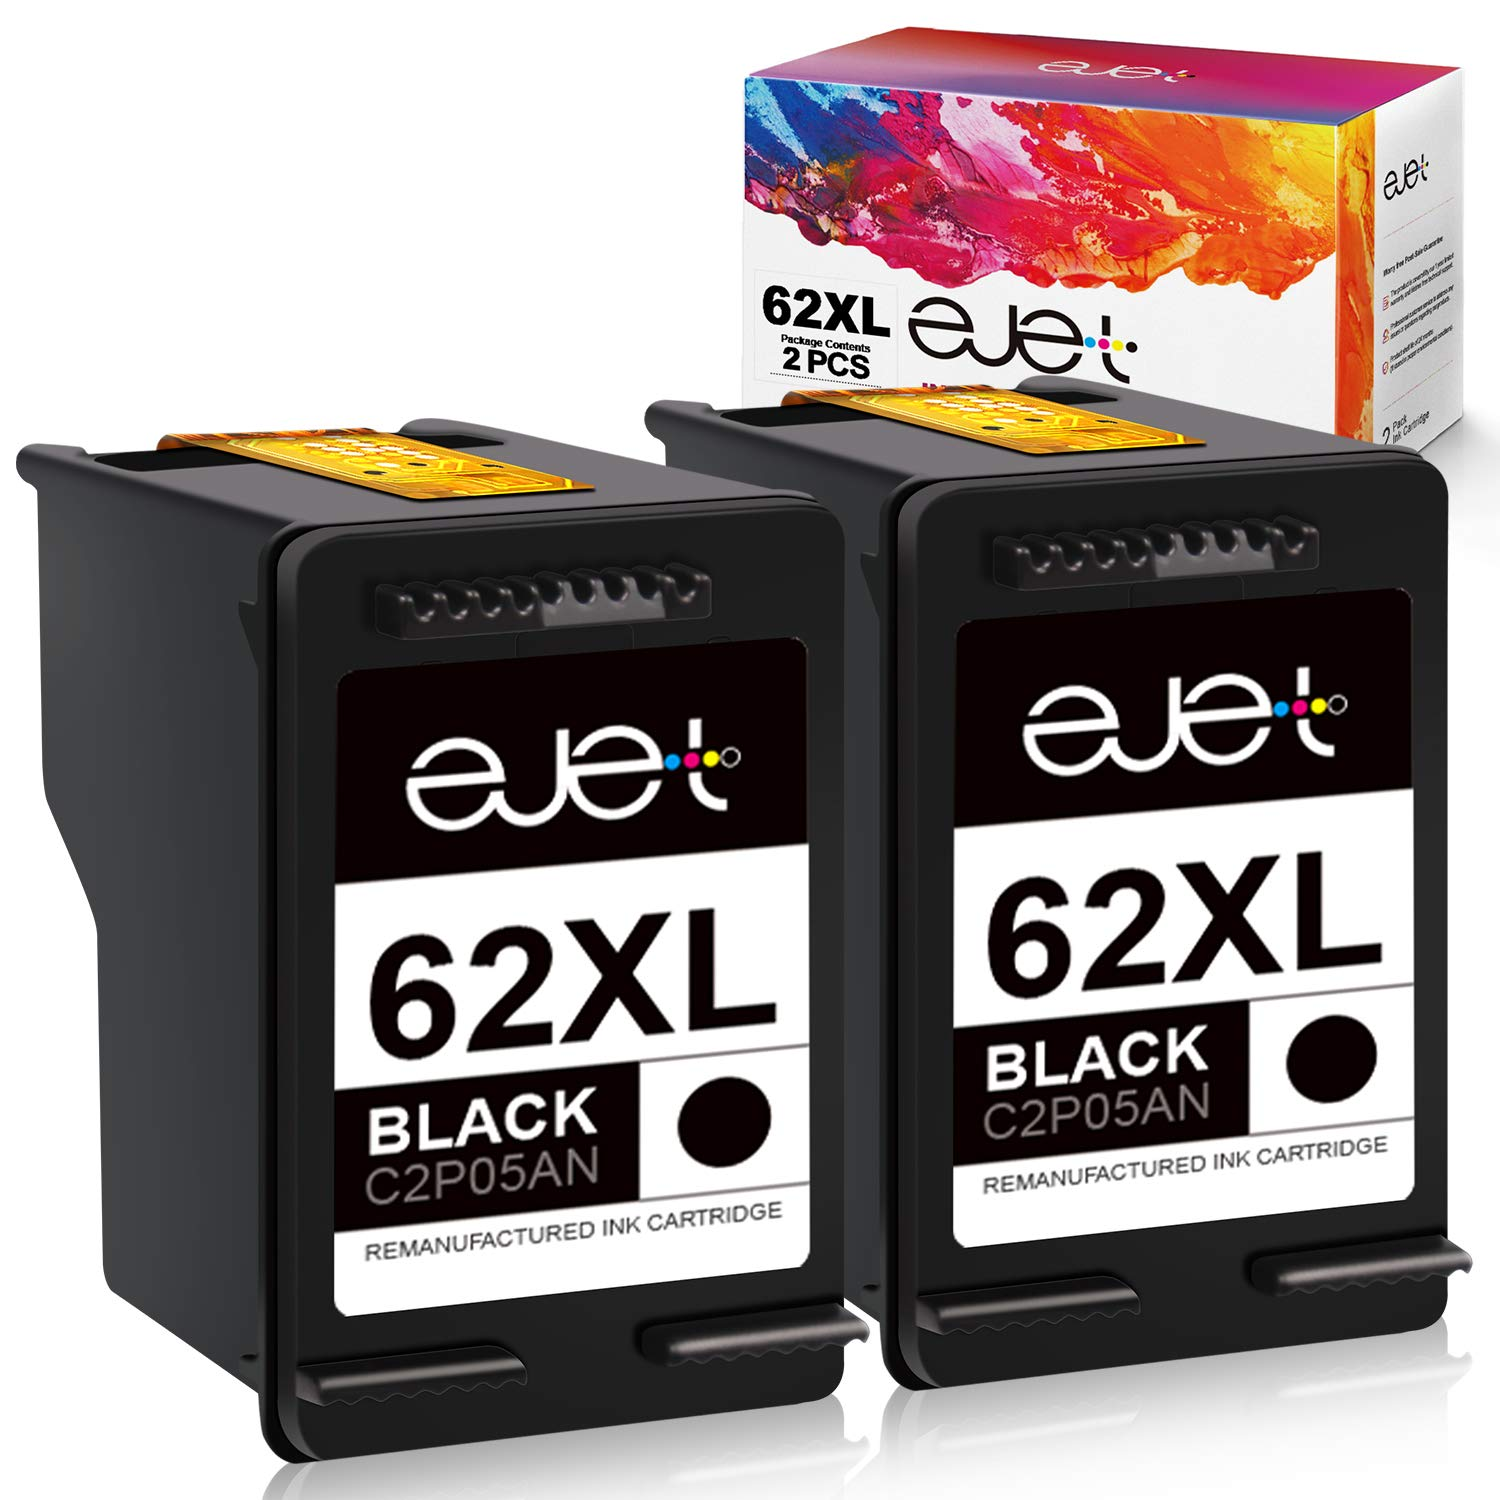 ejet Remanufactured Ink Cartridge Replacement for HP 62XL 62 XL to use with Envy 7640 5660 7645 5640 5642 5540 Officejet 5741 8040 5740 OfficeJet 250 200 Mobile Printer (2 Black)